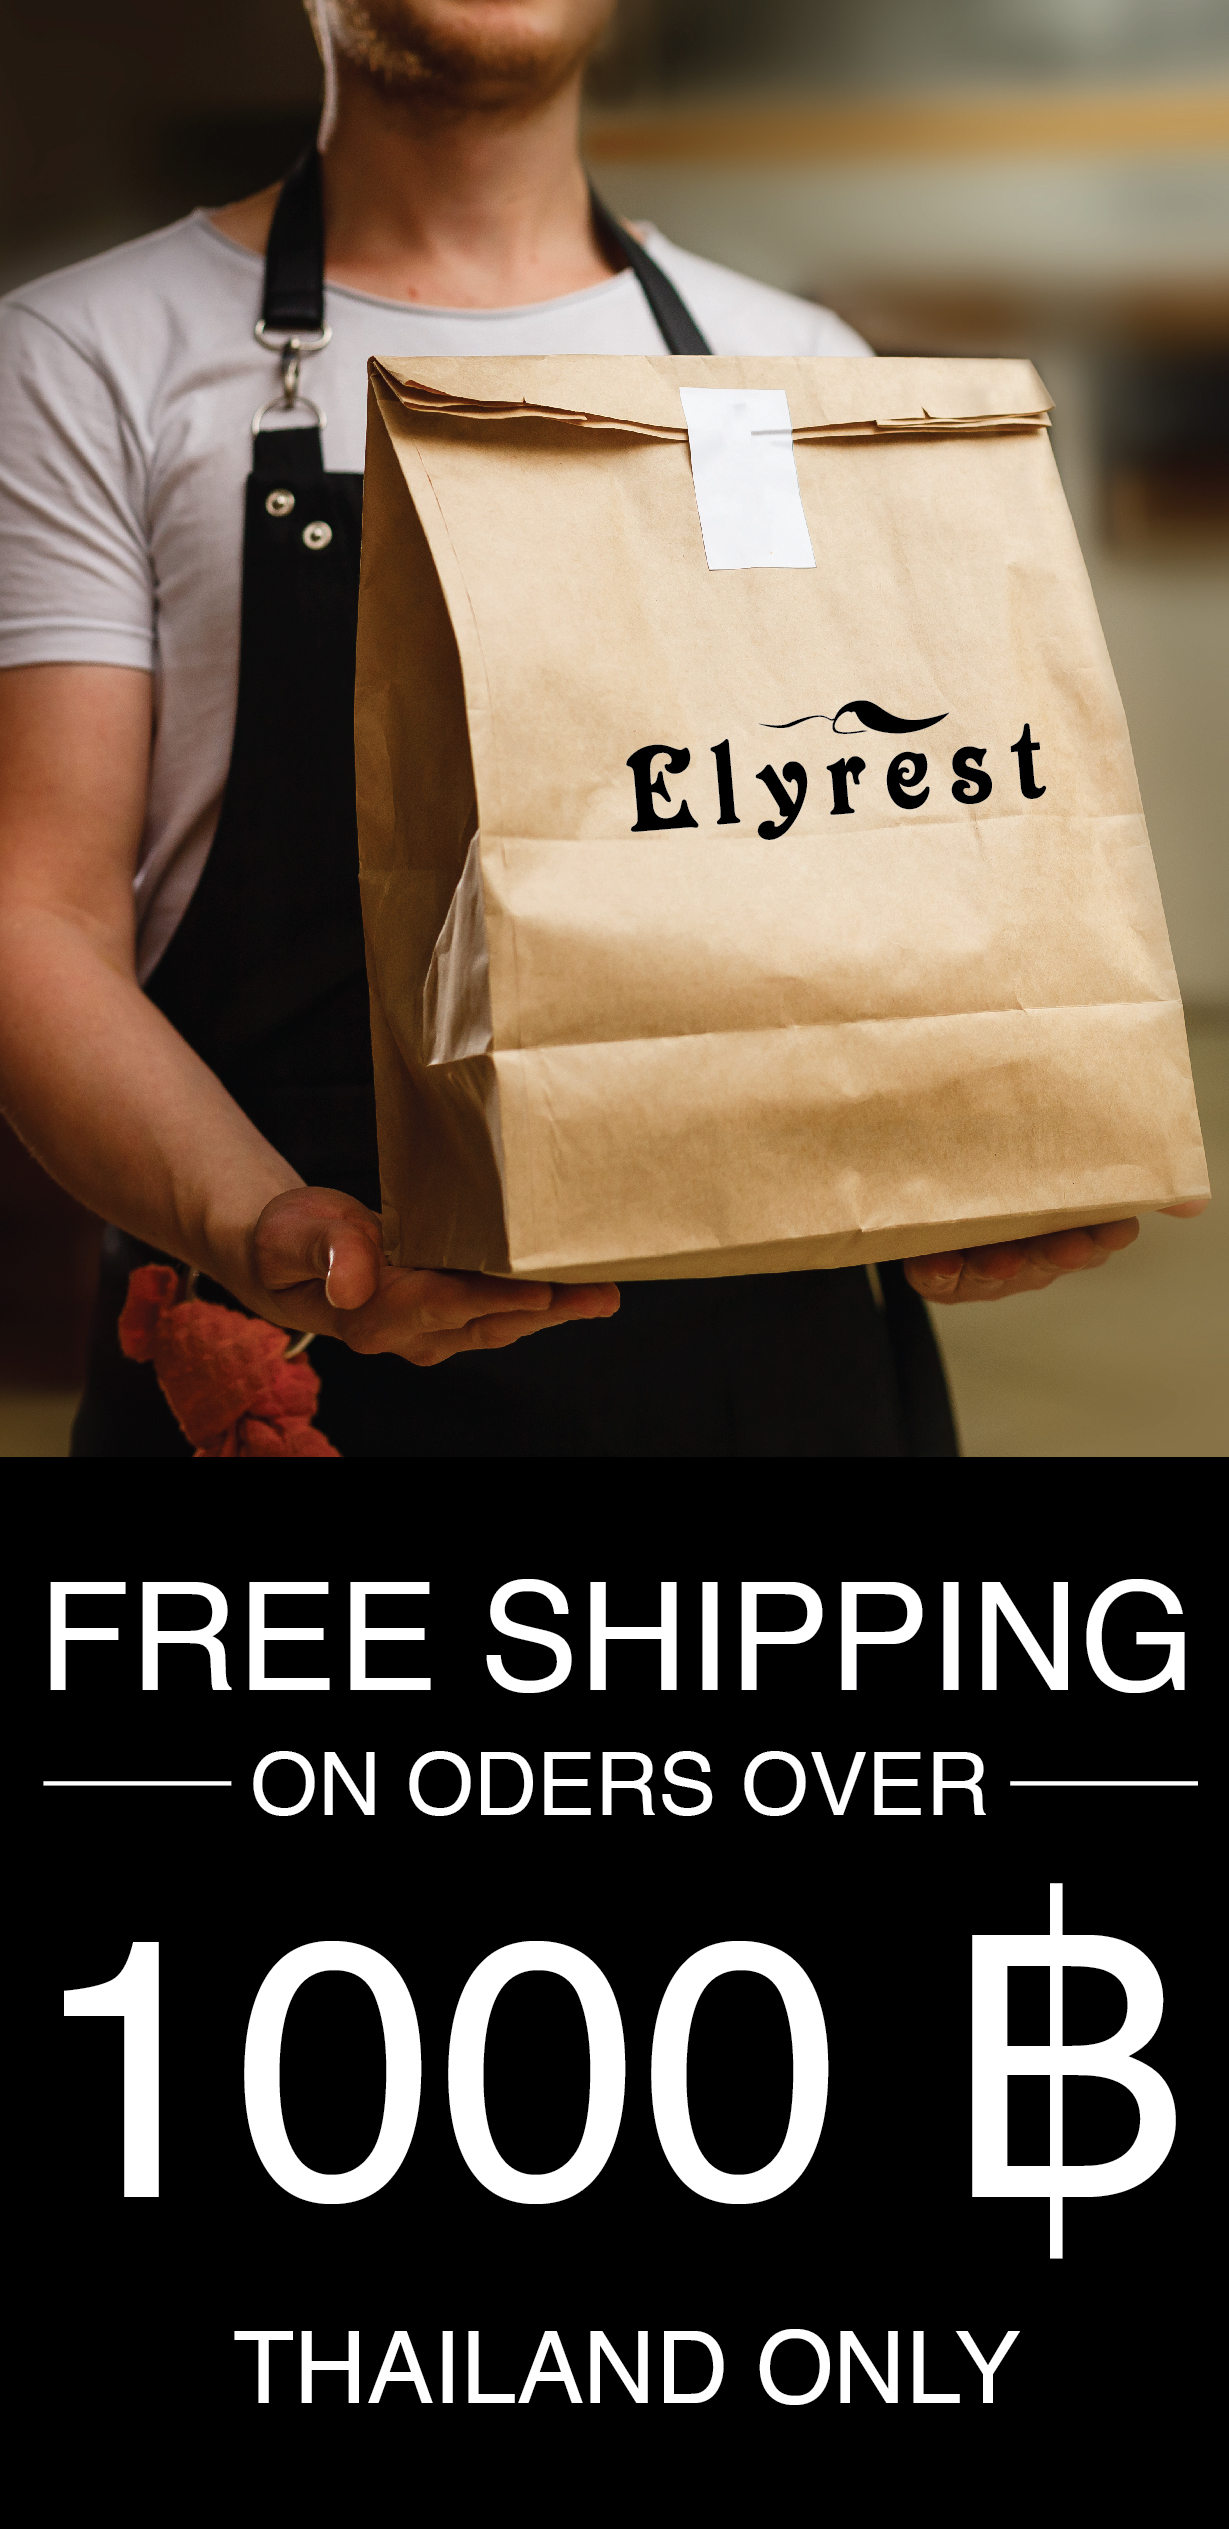 FREE SHIPPING Elyrest 1000